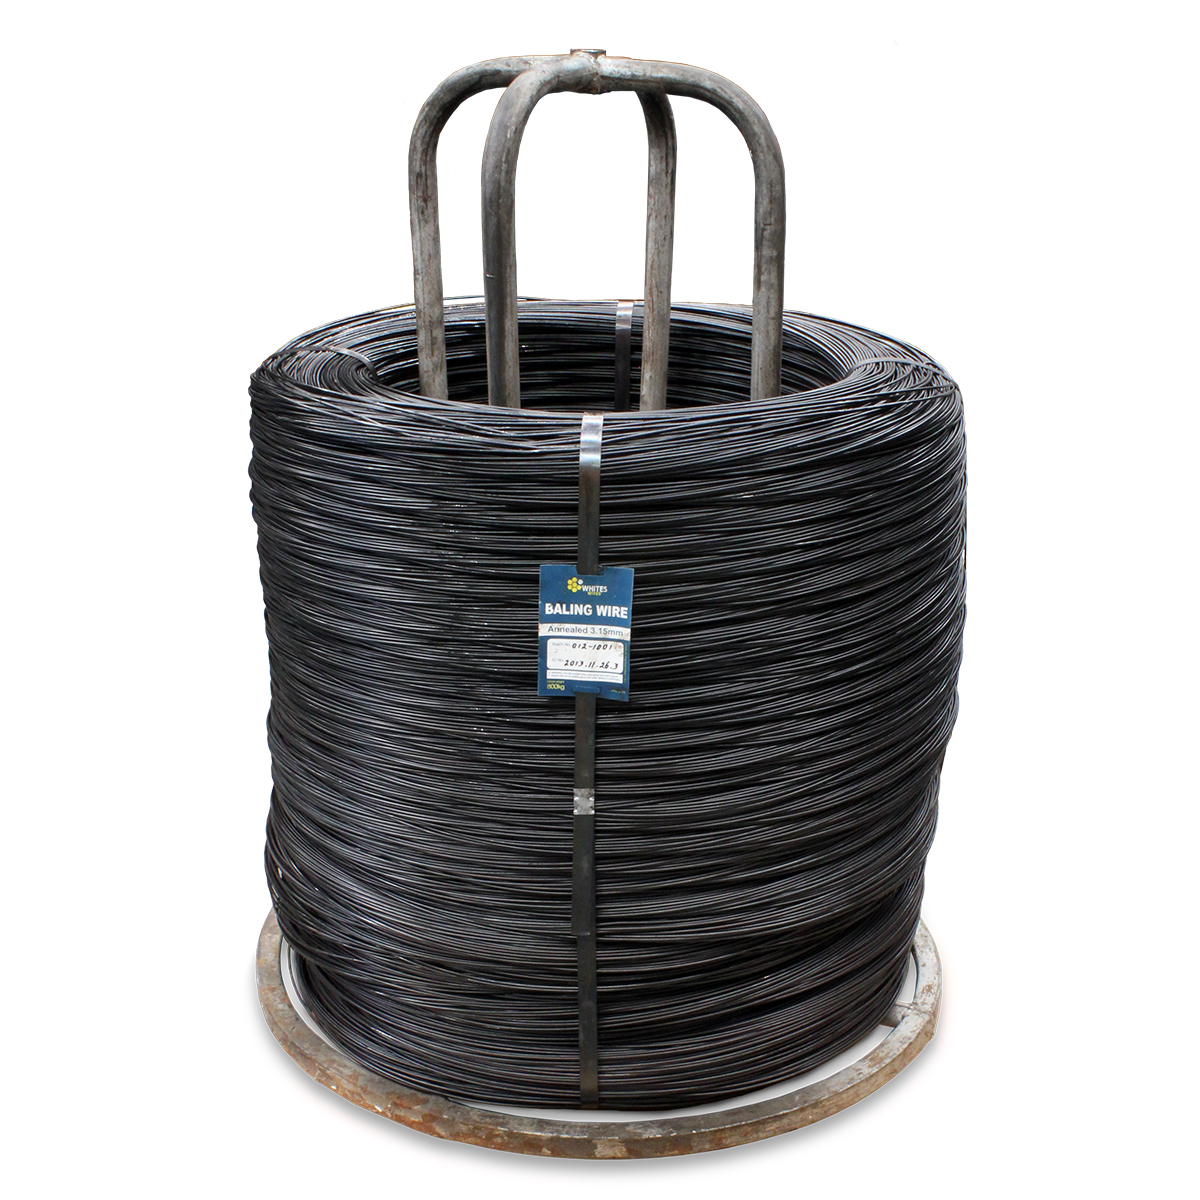 29631 29634 Annealed Baling Wire Coil Black